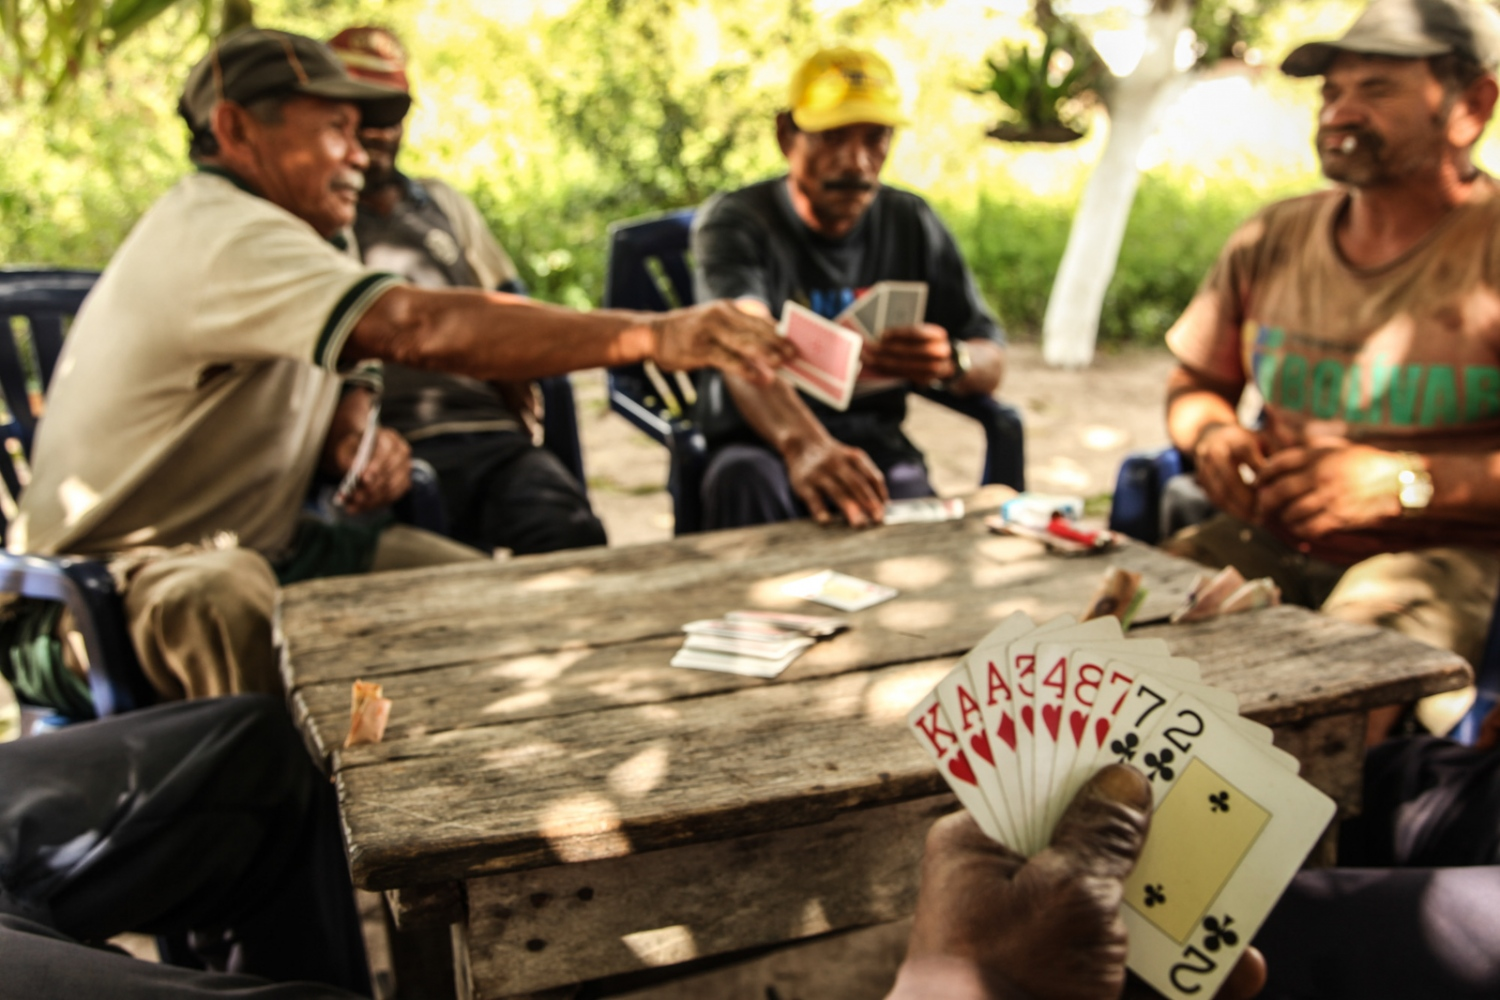 When they are not working, the miners join together to play cards, and to talk about the places where they think they can find gold.